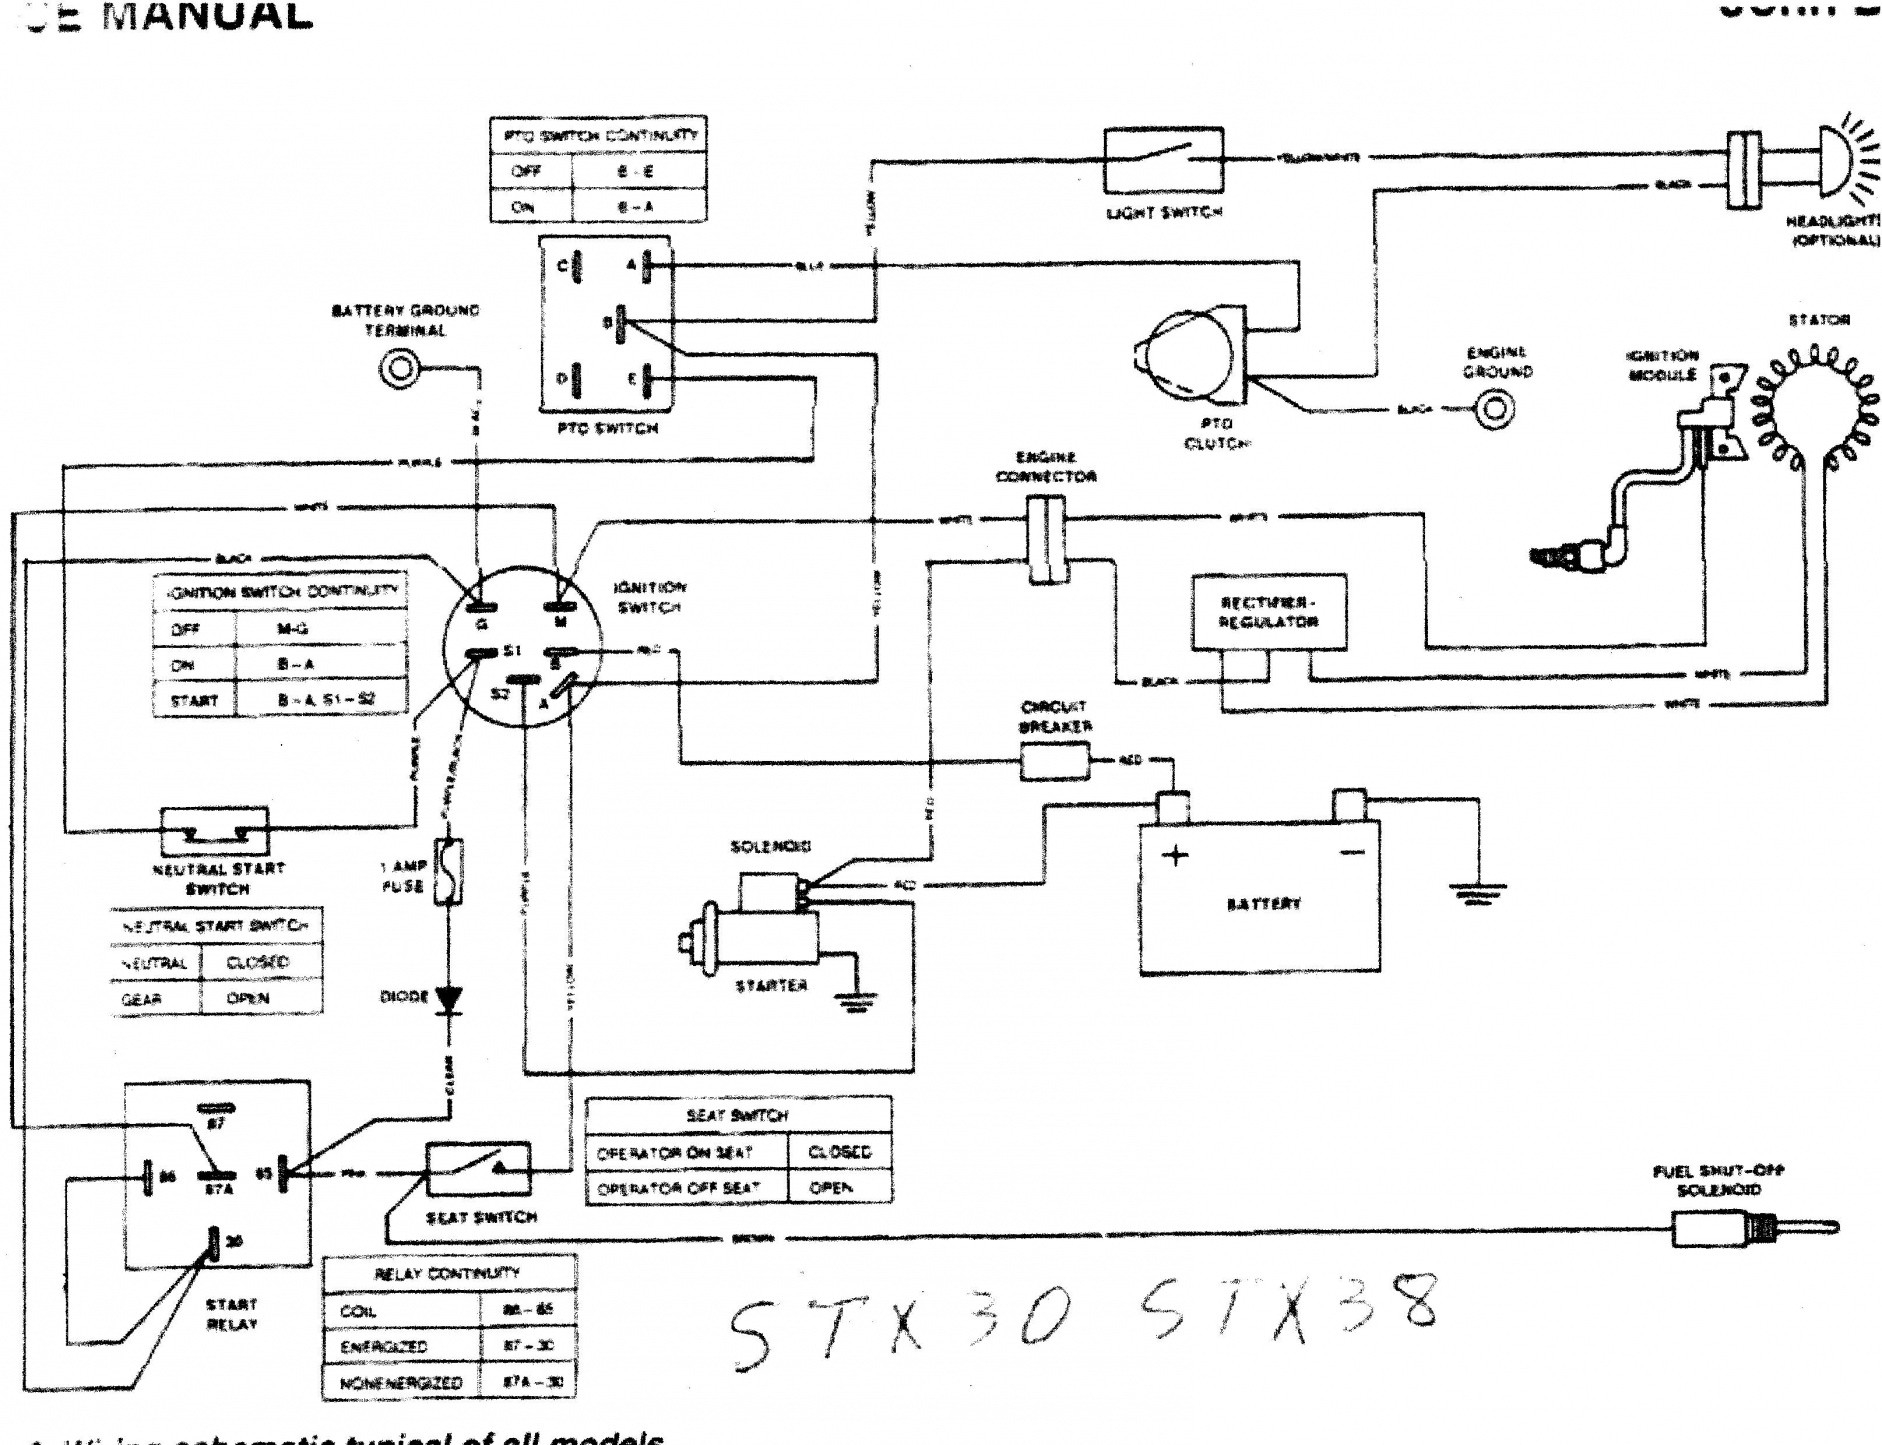 wiring diagram for stx38 john deere wiring diagram for 1020 john deere